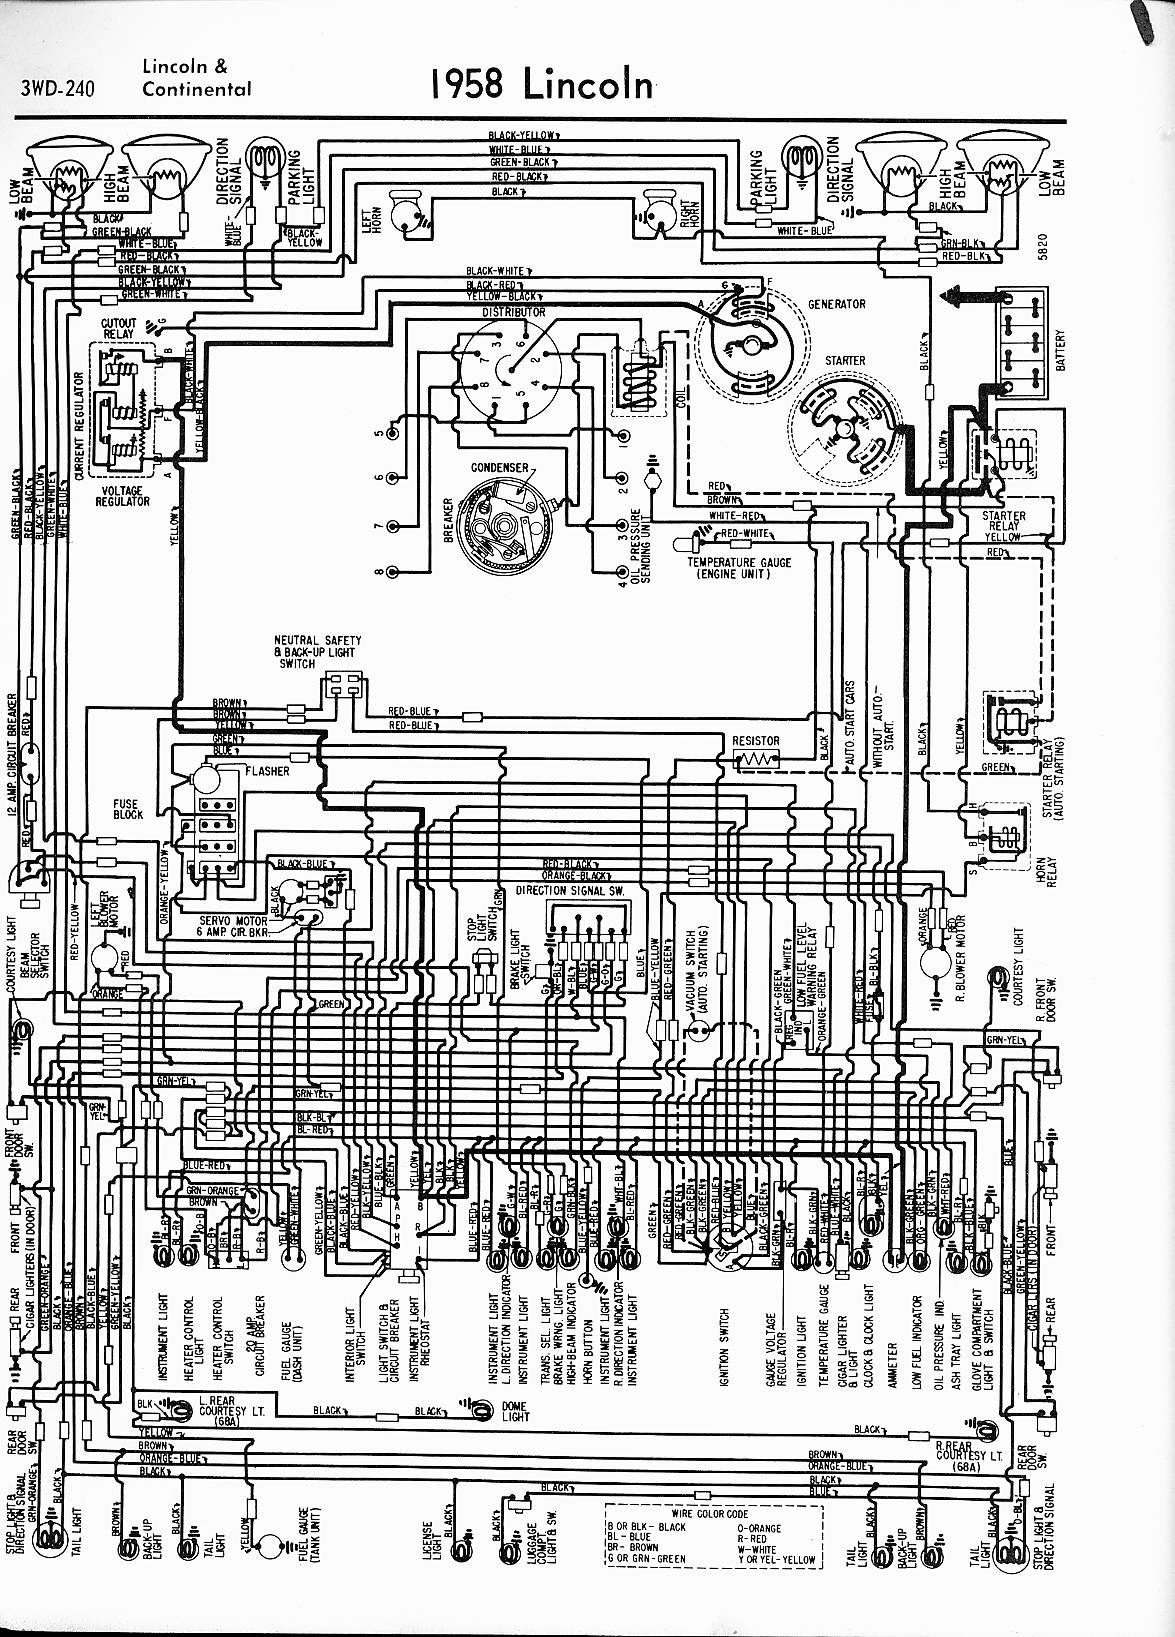 Lincoln Wiring Diagrams Good Guide Of Diagram Welder 1966 Schematics Rh Ksefanzone Com Sa200 Welders